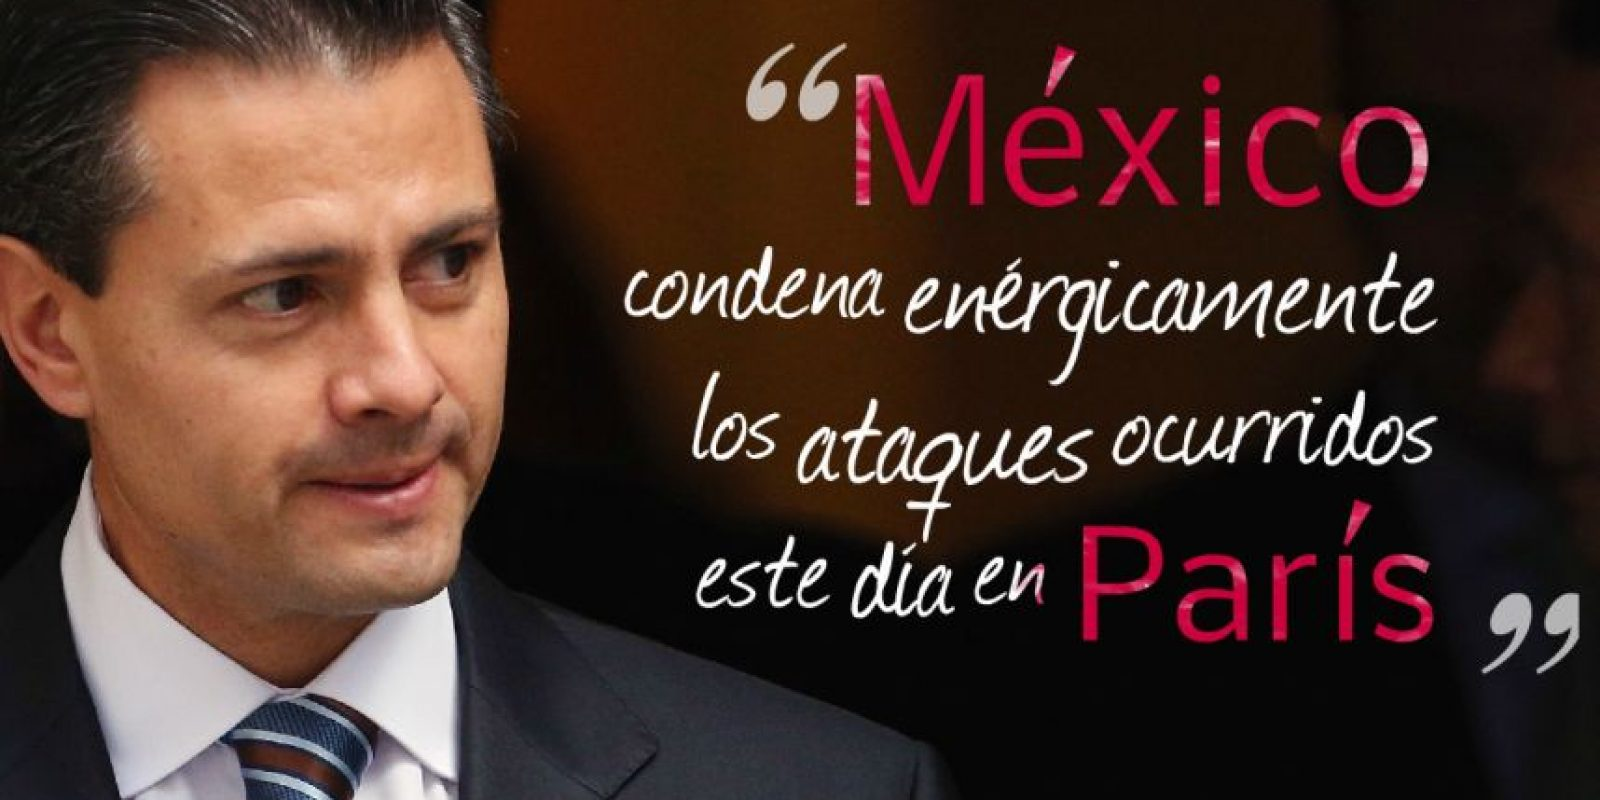 ENRIQUE PEÑA NIETO, Presidente de México. Foto: Getty Images